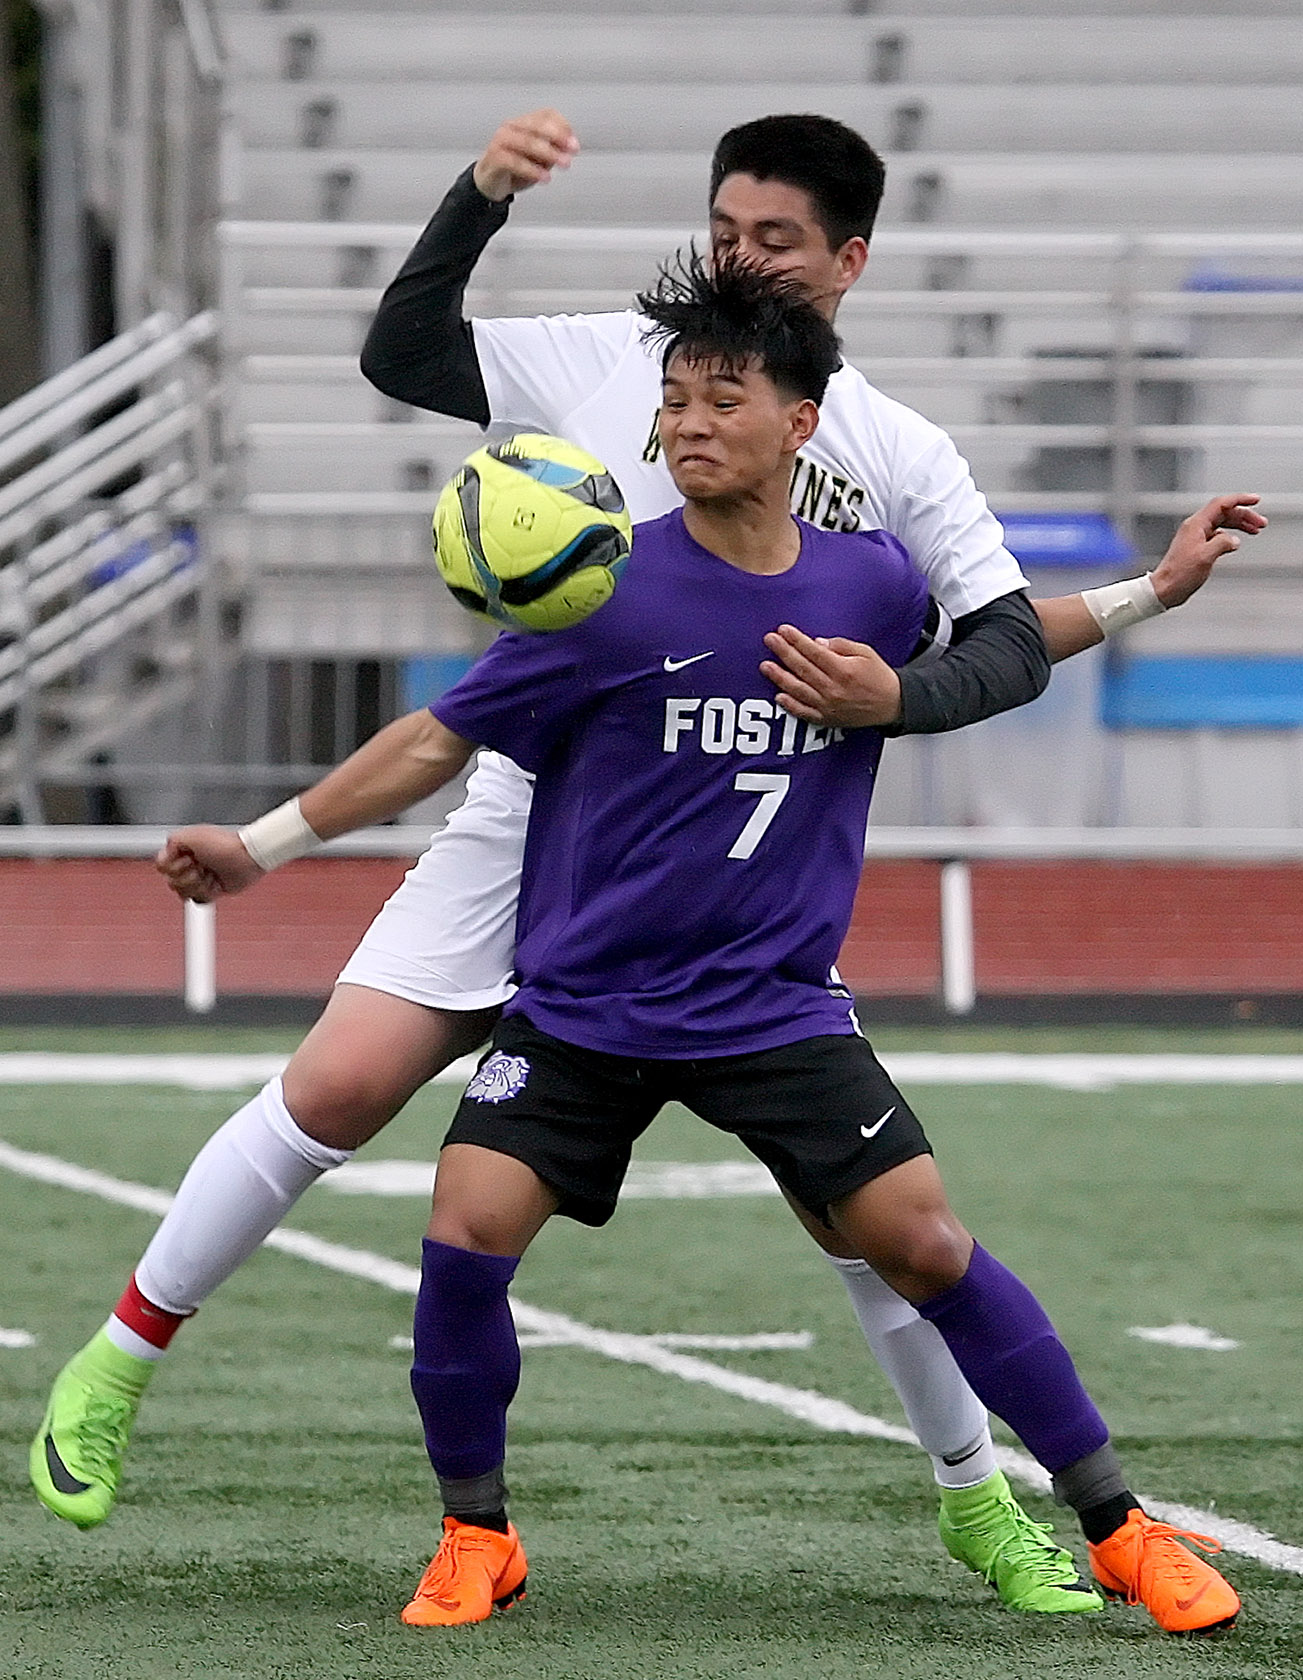 Bik Ceu of Foster blocks Evergreen's Josue Pedroza from getting to the ball.